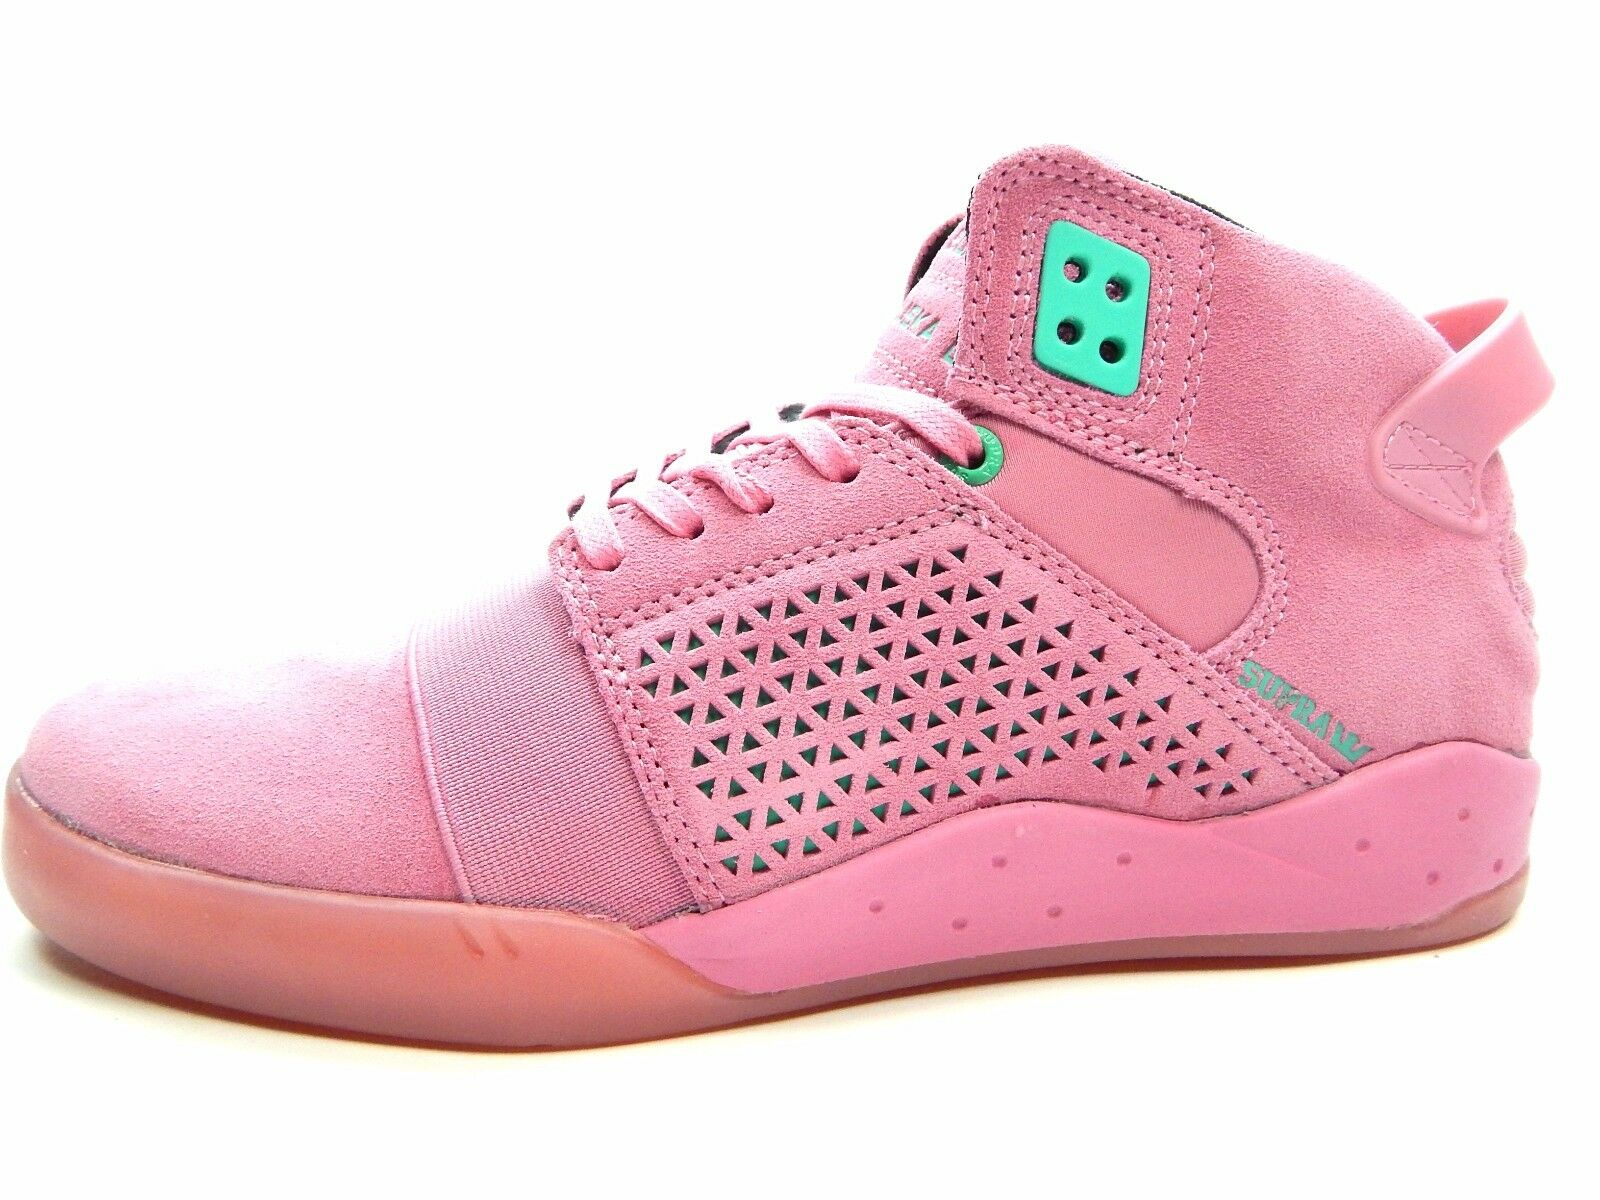 SUPRA SKYTOP III ROSE MINT 08031-692-M Uomo SHOES SIZE 7.5 TO 11